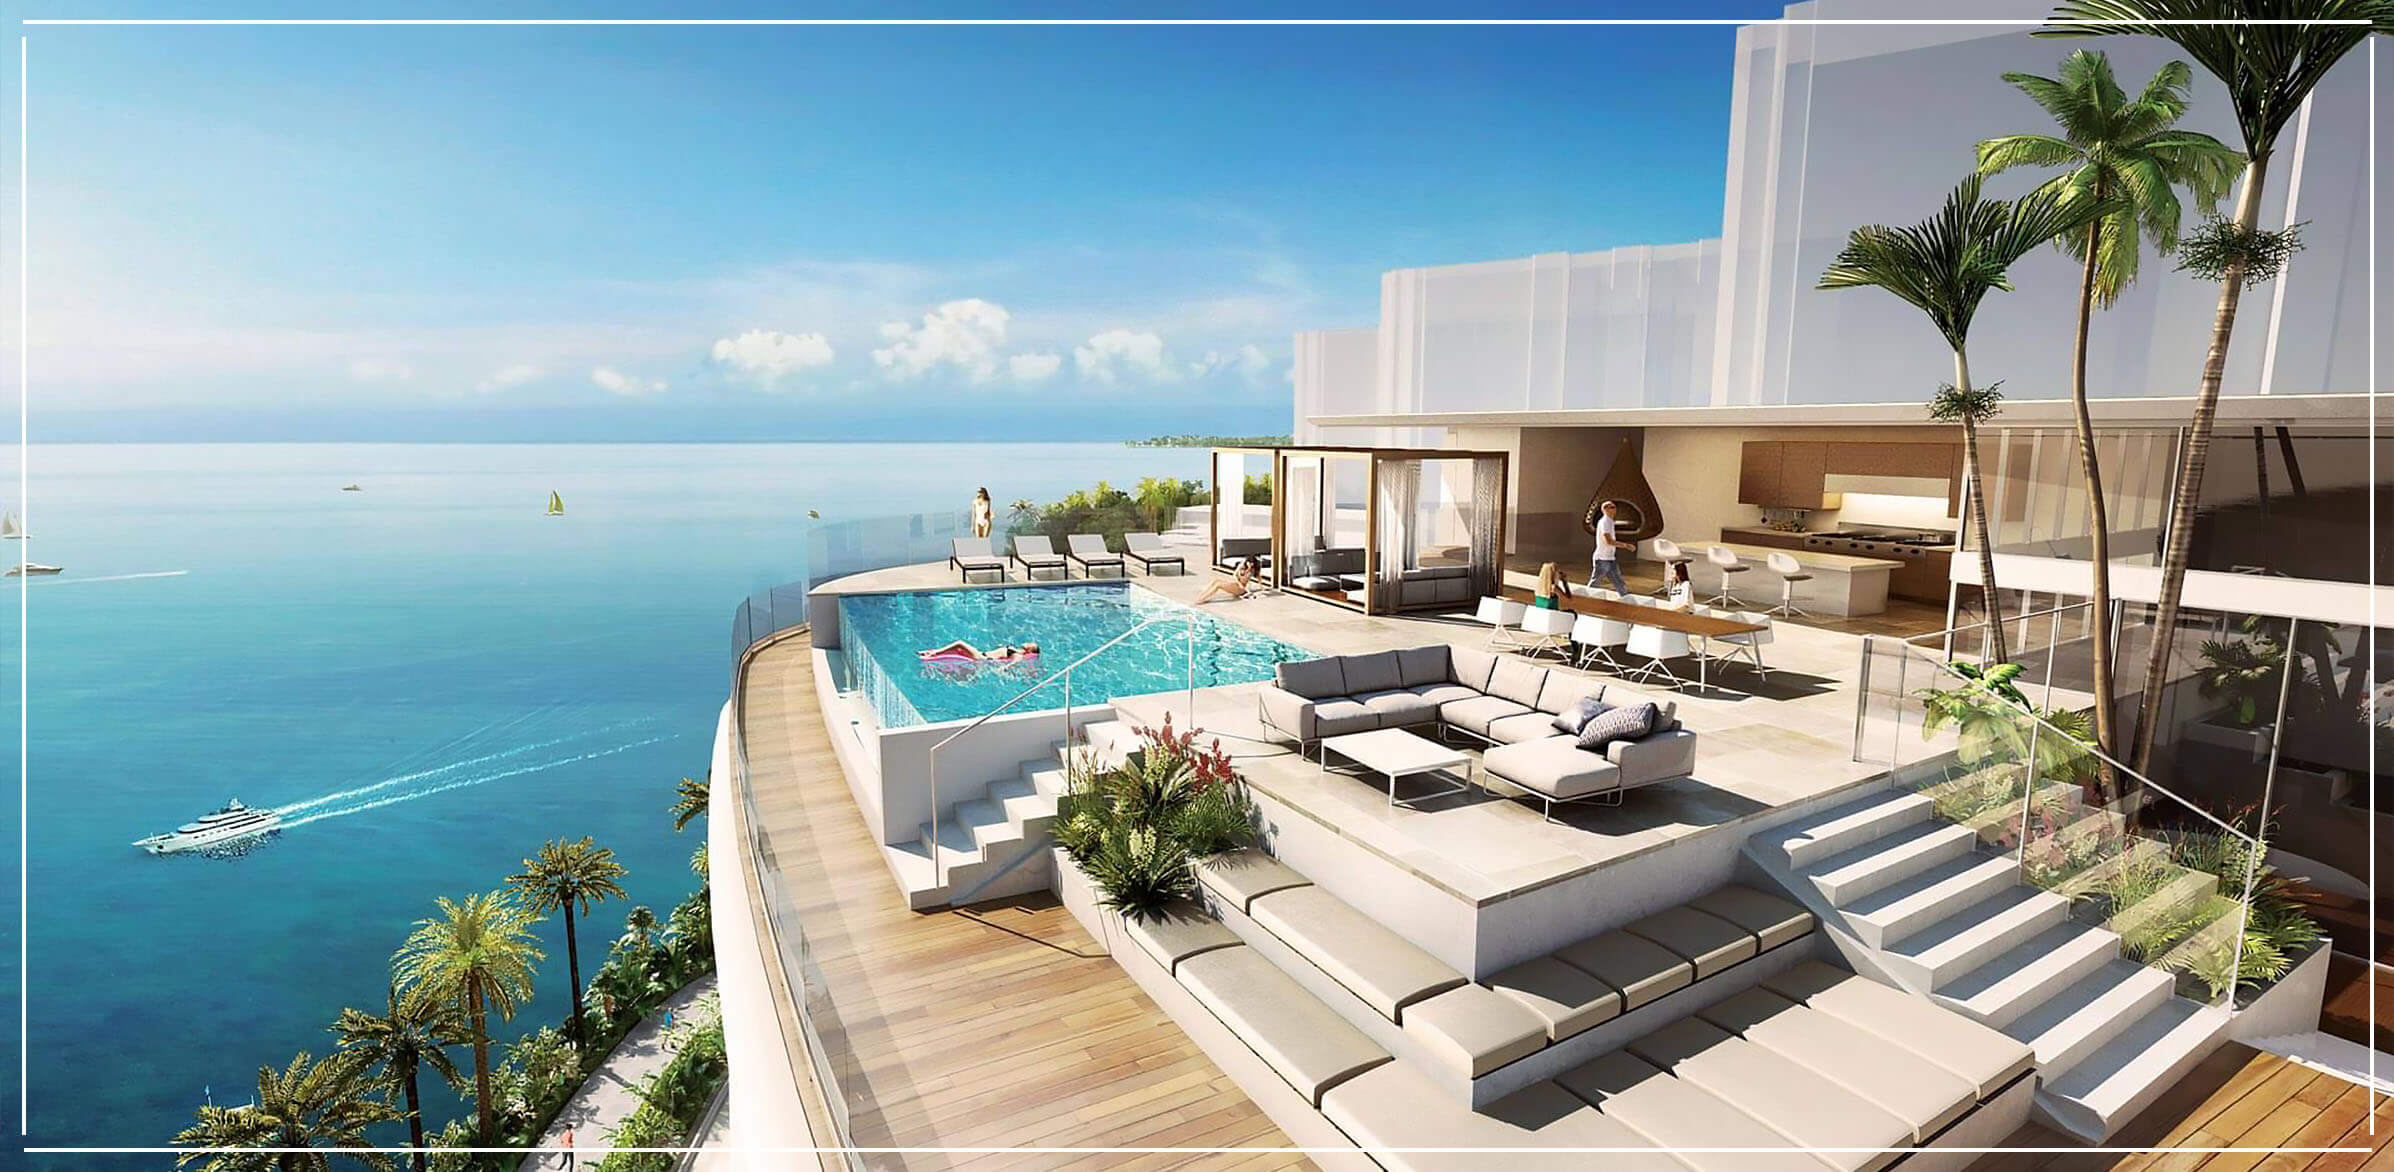 The Markers Grove Isle Penthouses for Sale in Coconut Grove